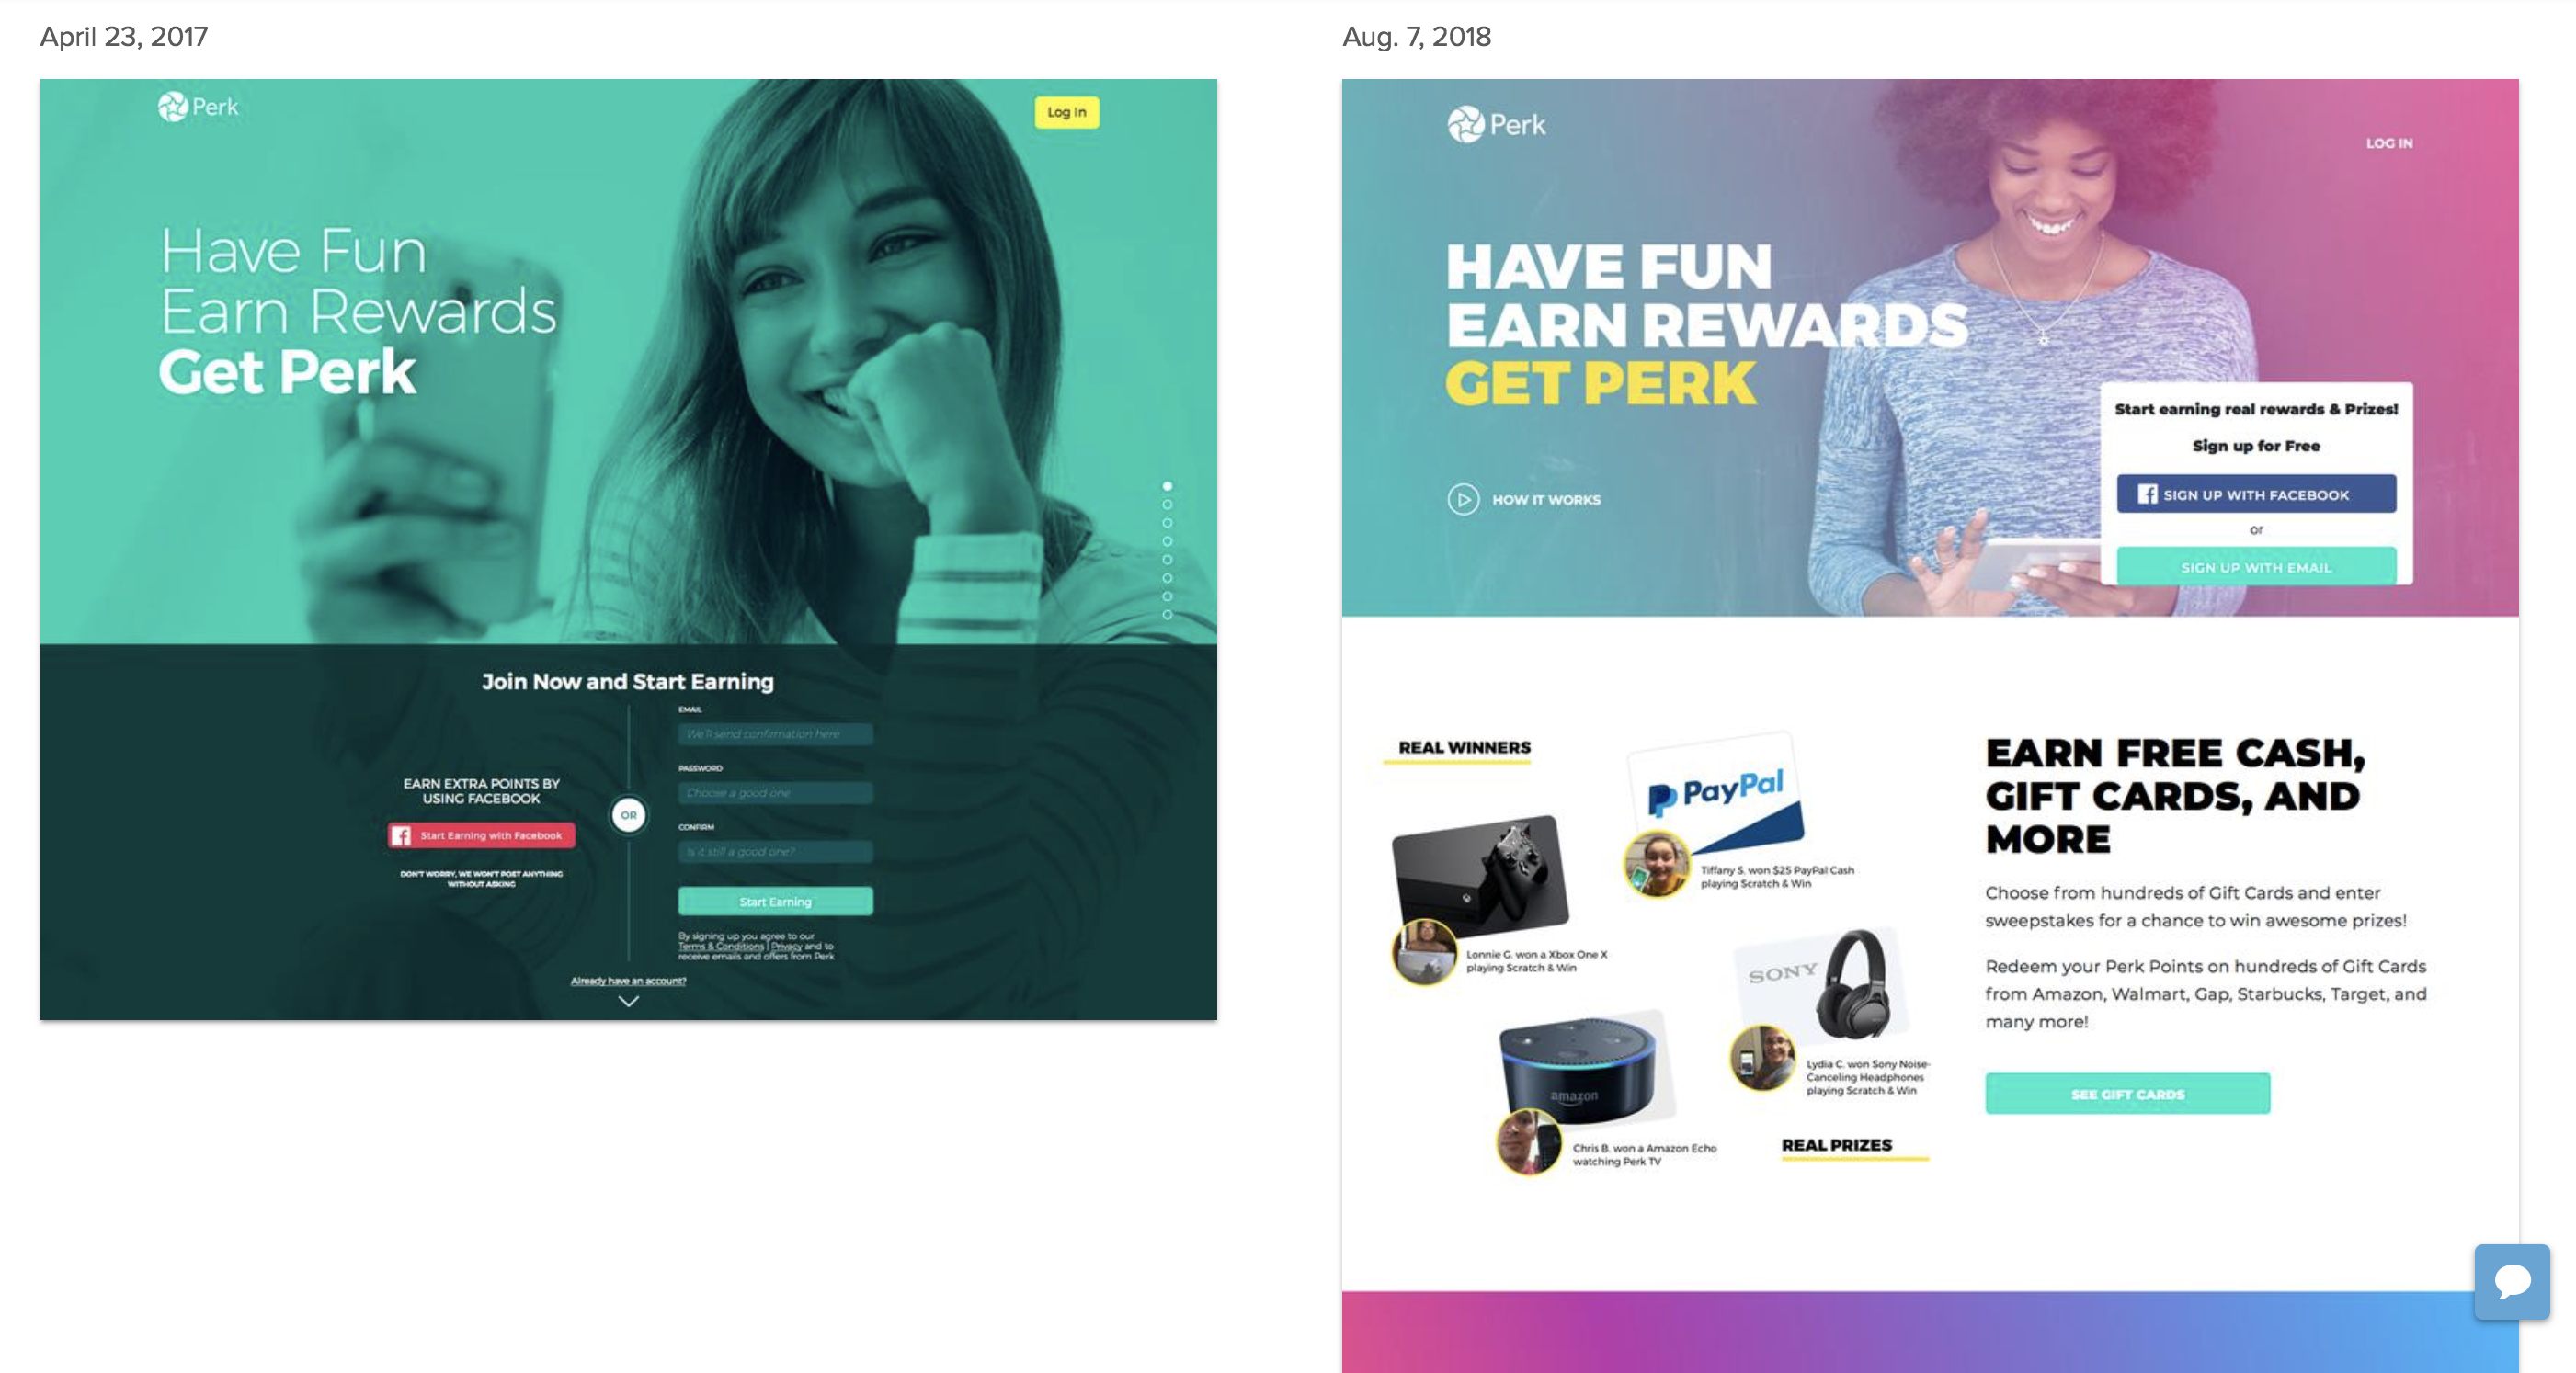 Crayon Inspire - Website Design Inspiration